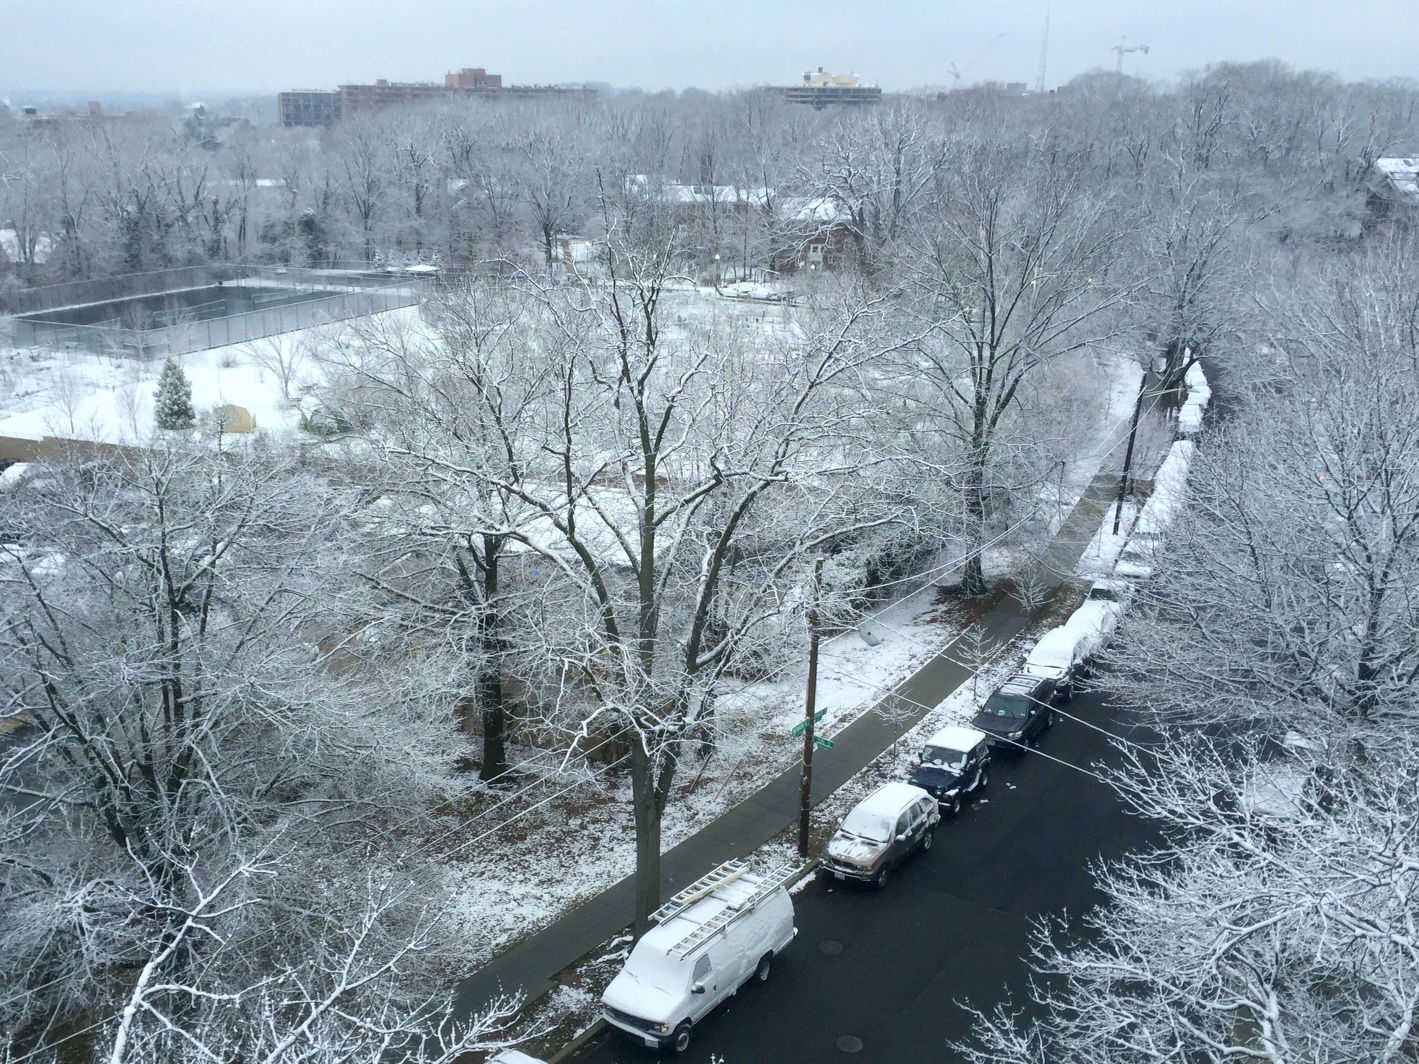 A street view of the snowfall in D.C. (WTOP/Dave Dildine)